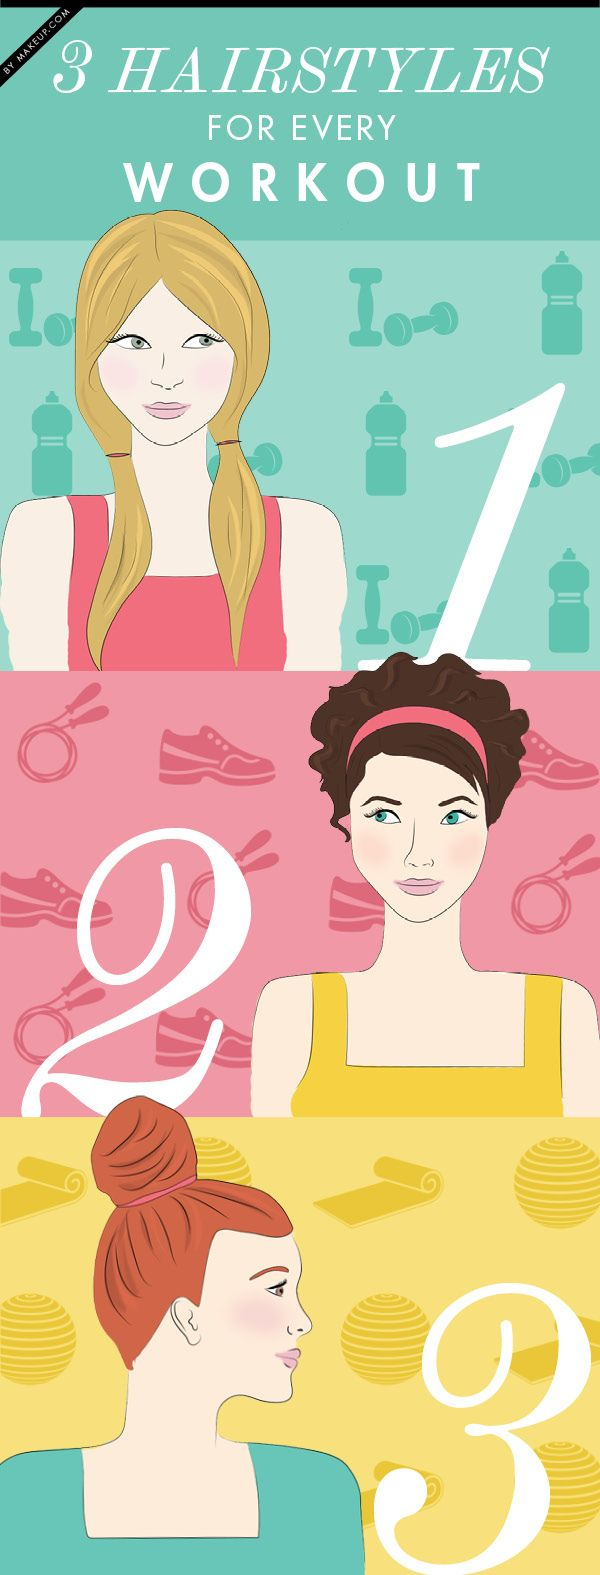 The 3 Best Hairstyles for ANY Workout by makeup.com #Hairstyle #Workout